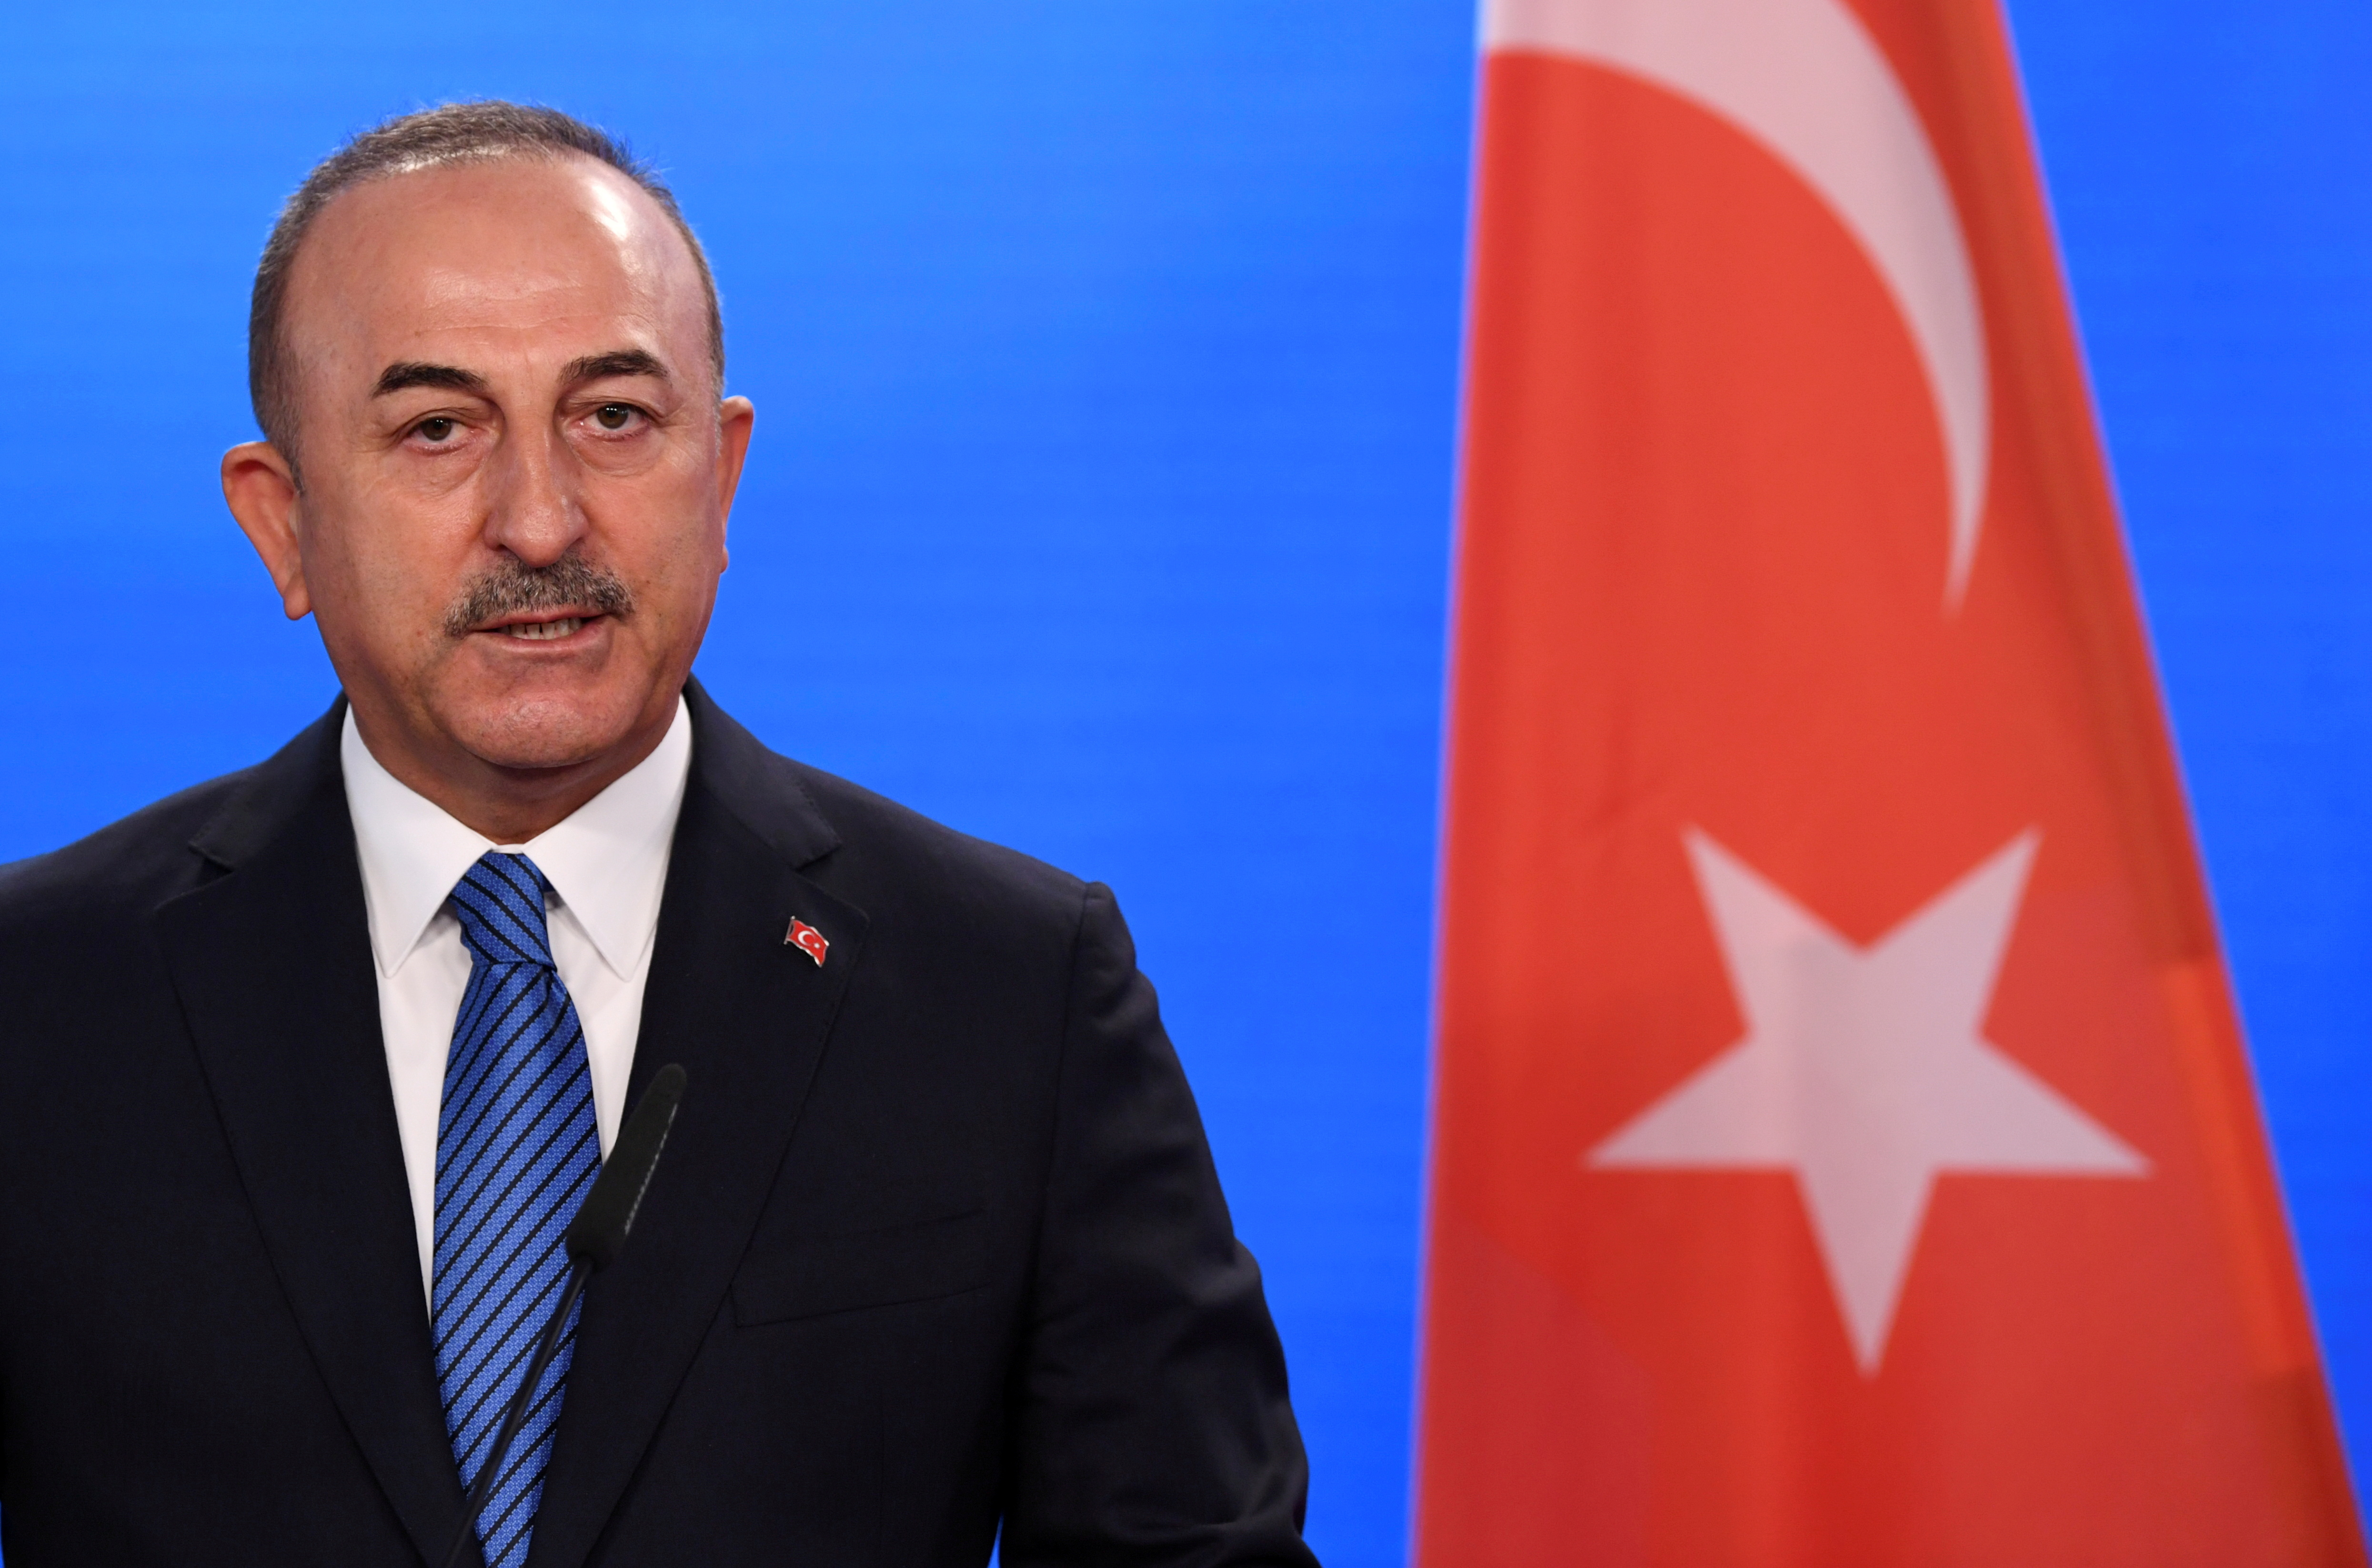 Turkish Foreign Minister Mevlut Cavusoglu gives a statement to the media after a meeting with his German counterpart in Berlin, Germany, May 6, 2021. REUTERS/Annegret Hilse/Pool